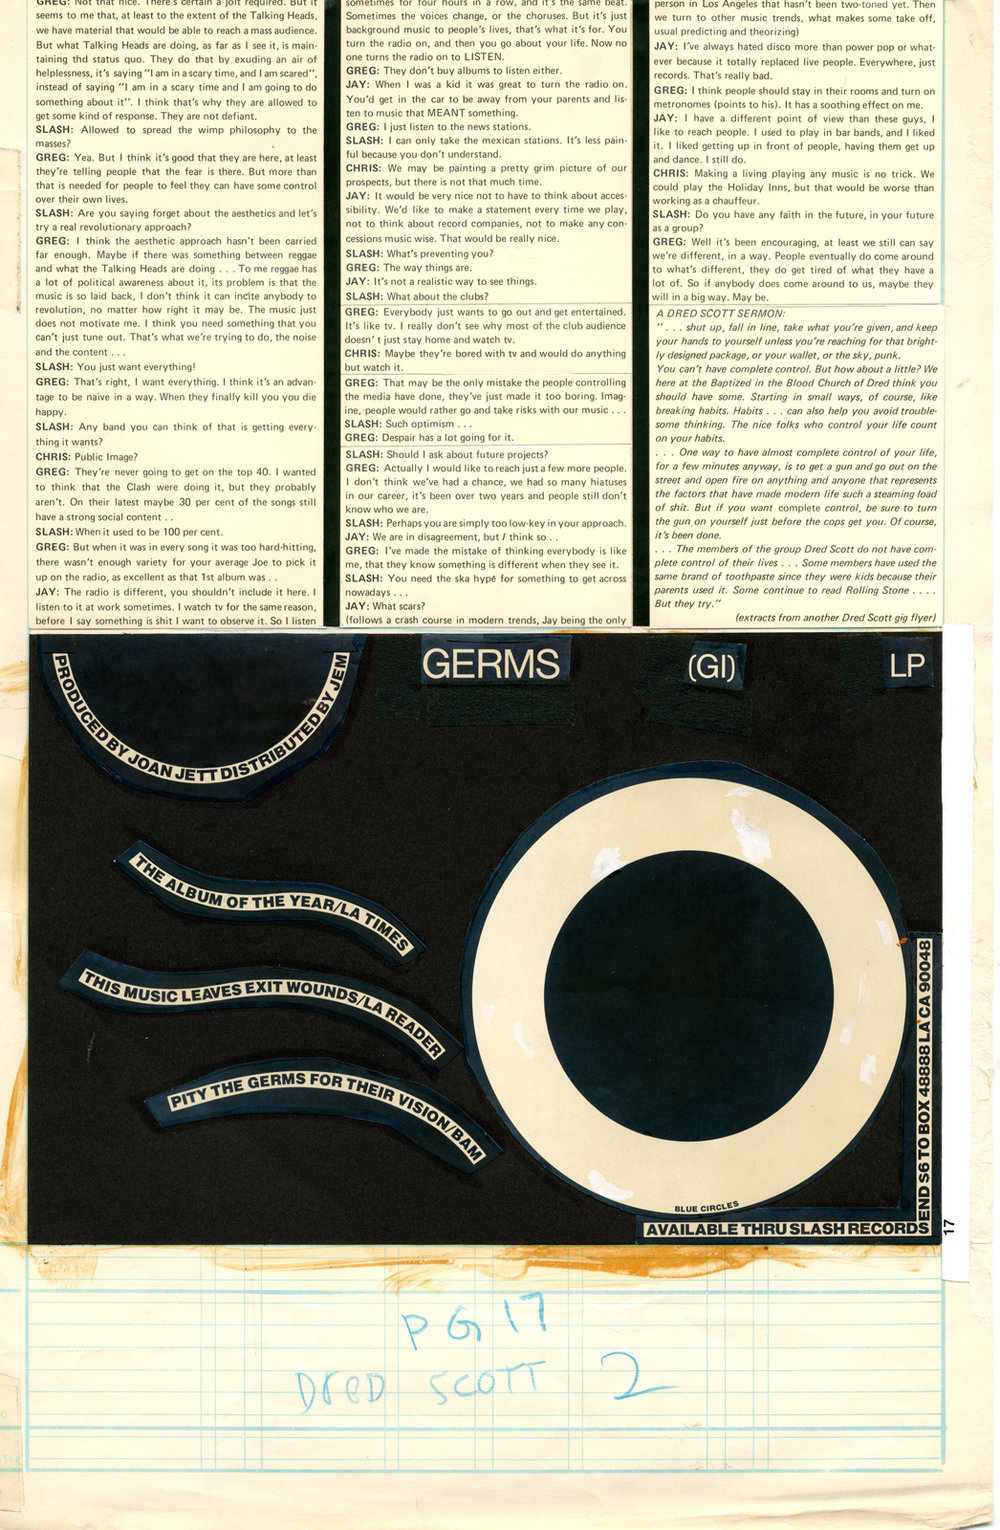 Germs (GI) LP Add - Slash Magazine